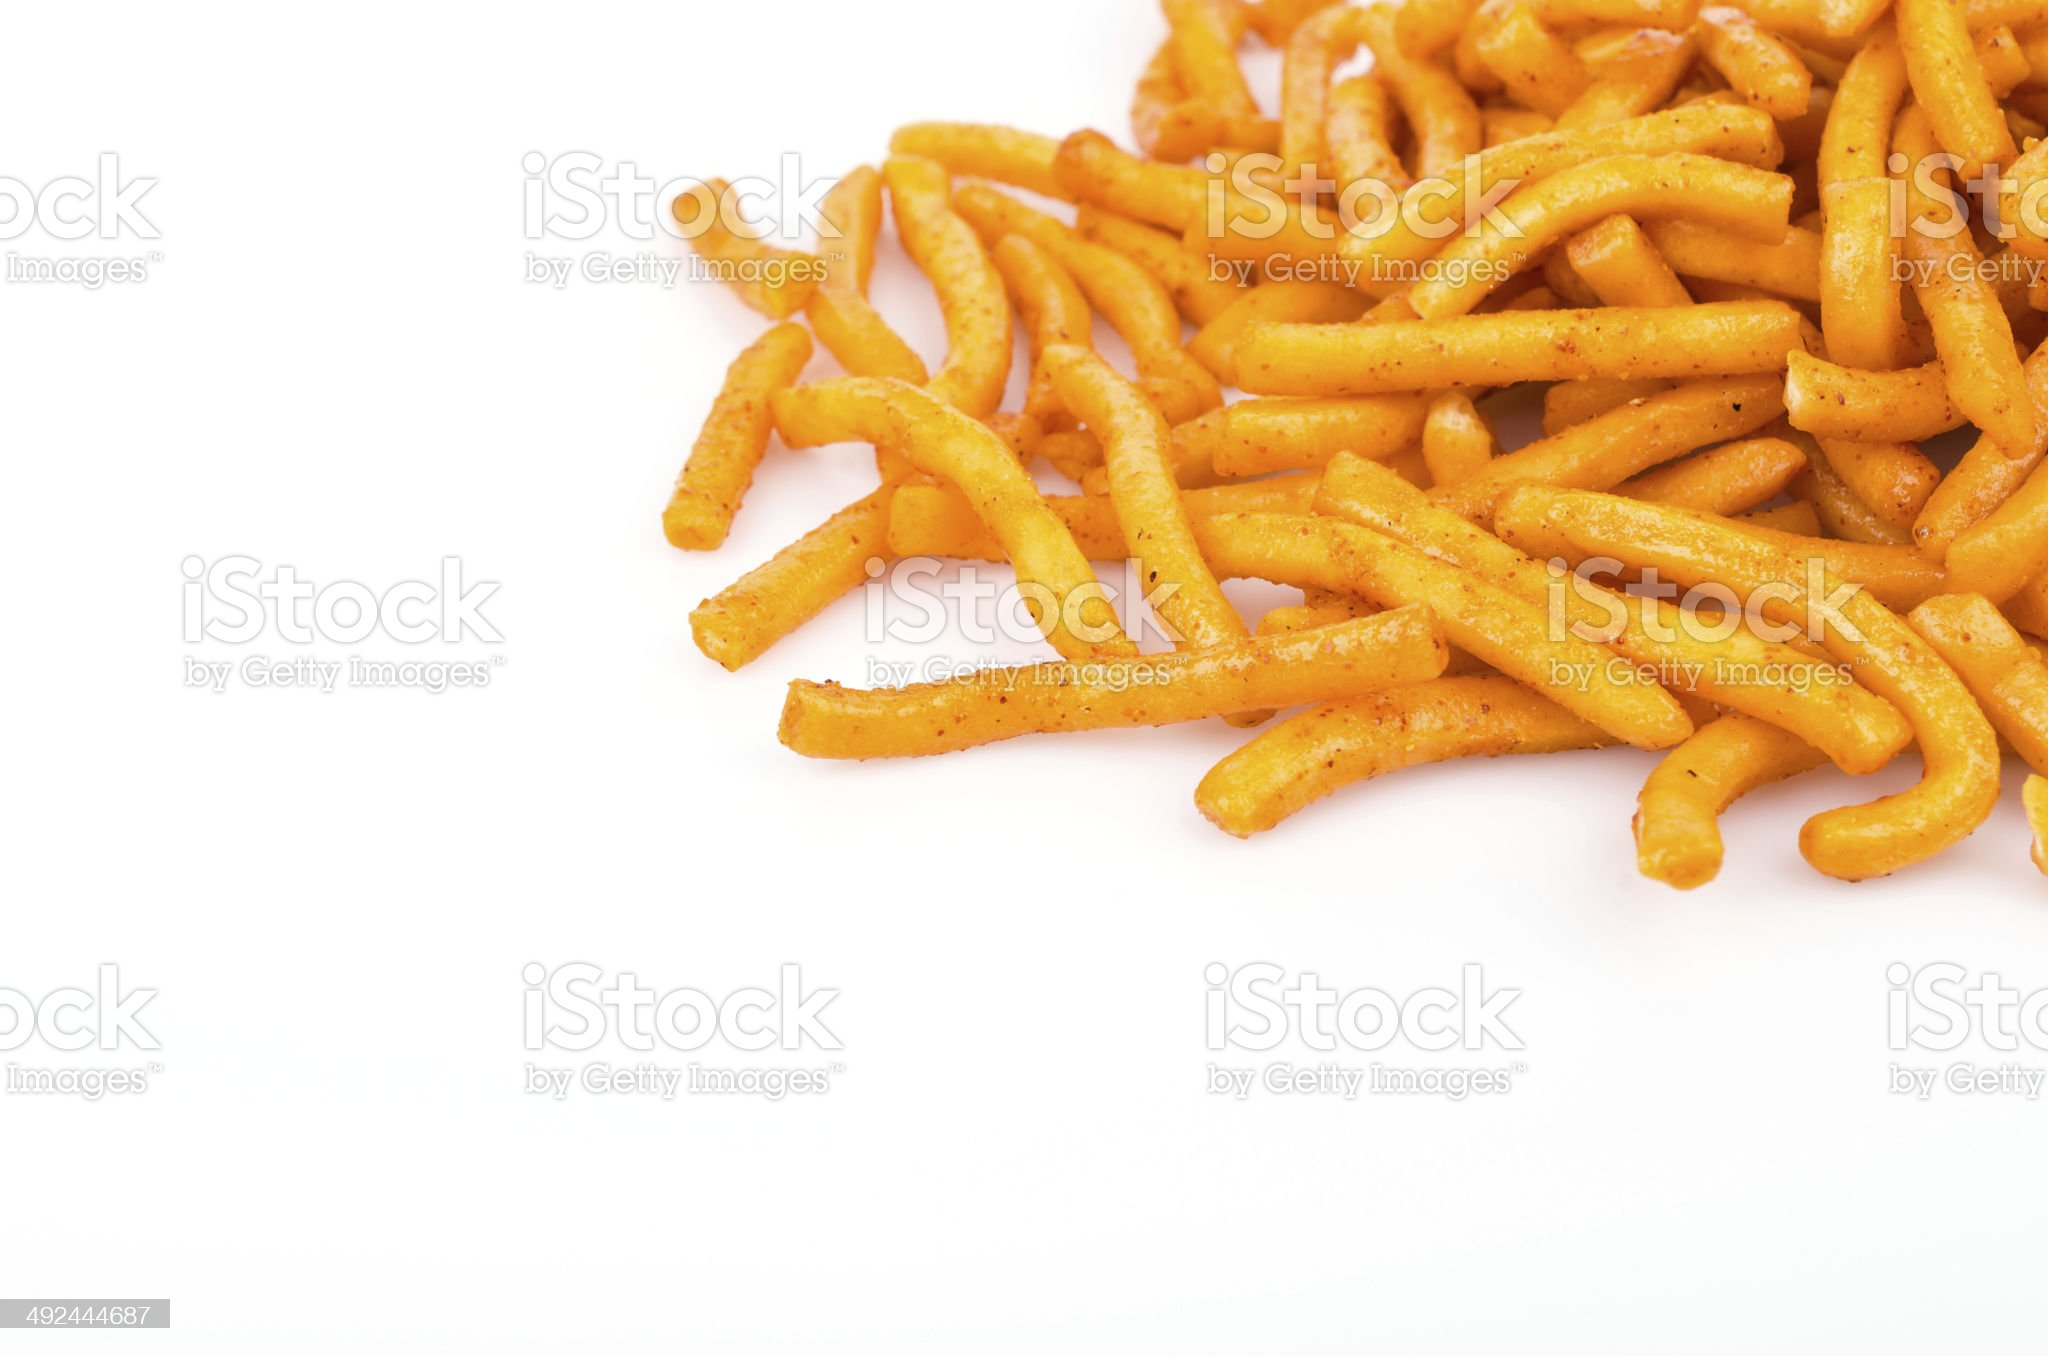 Bread sticks royalty-free stock photo